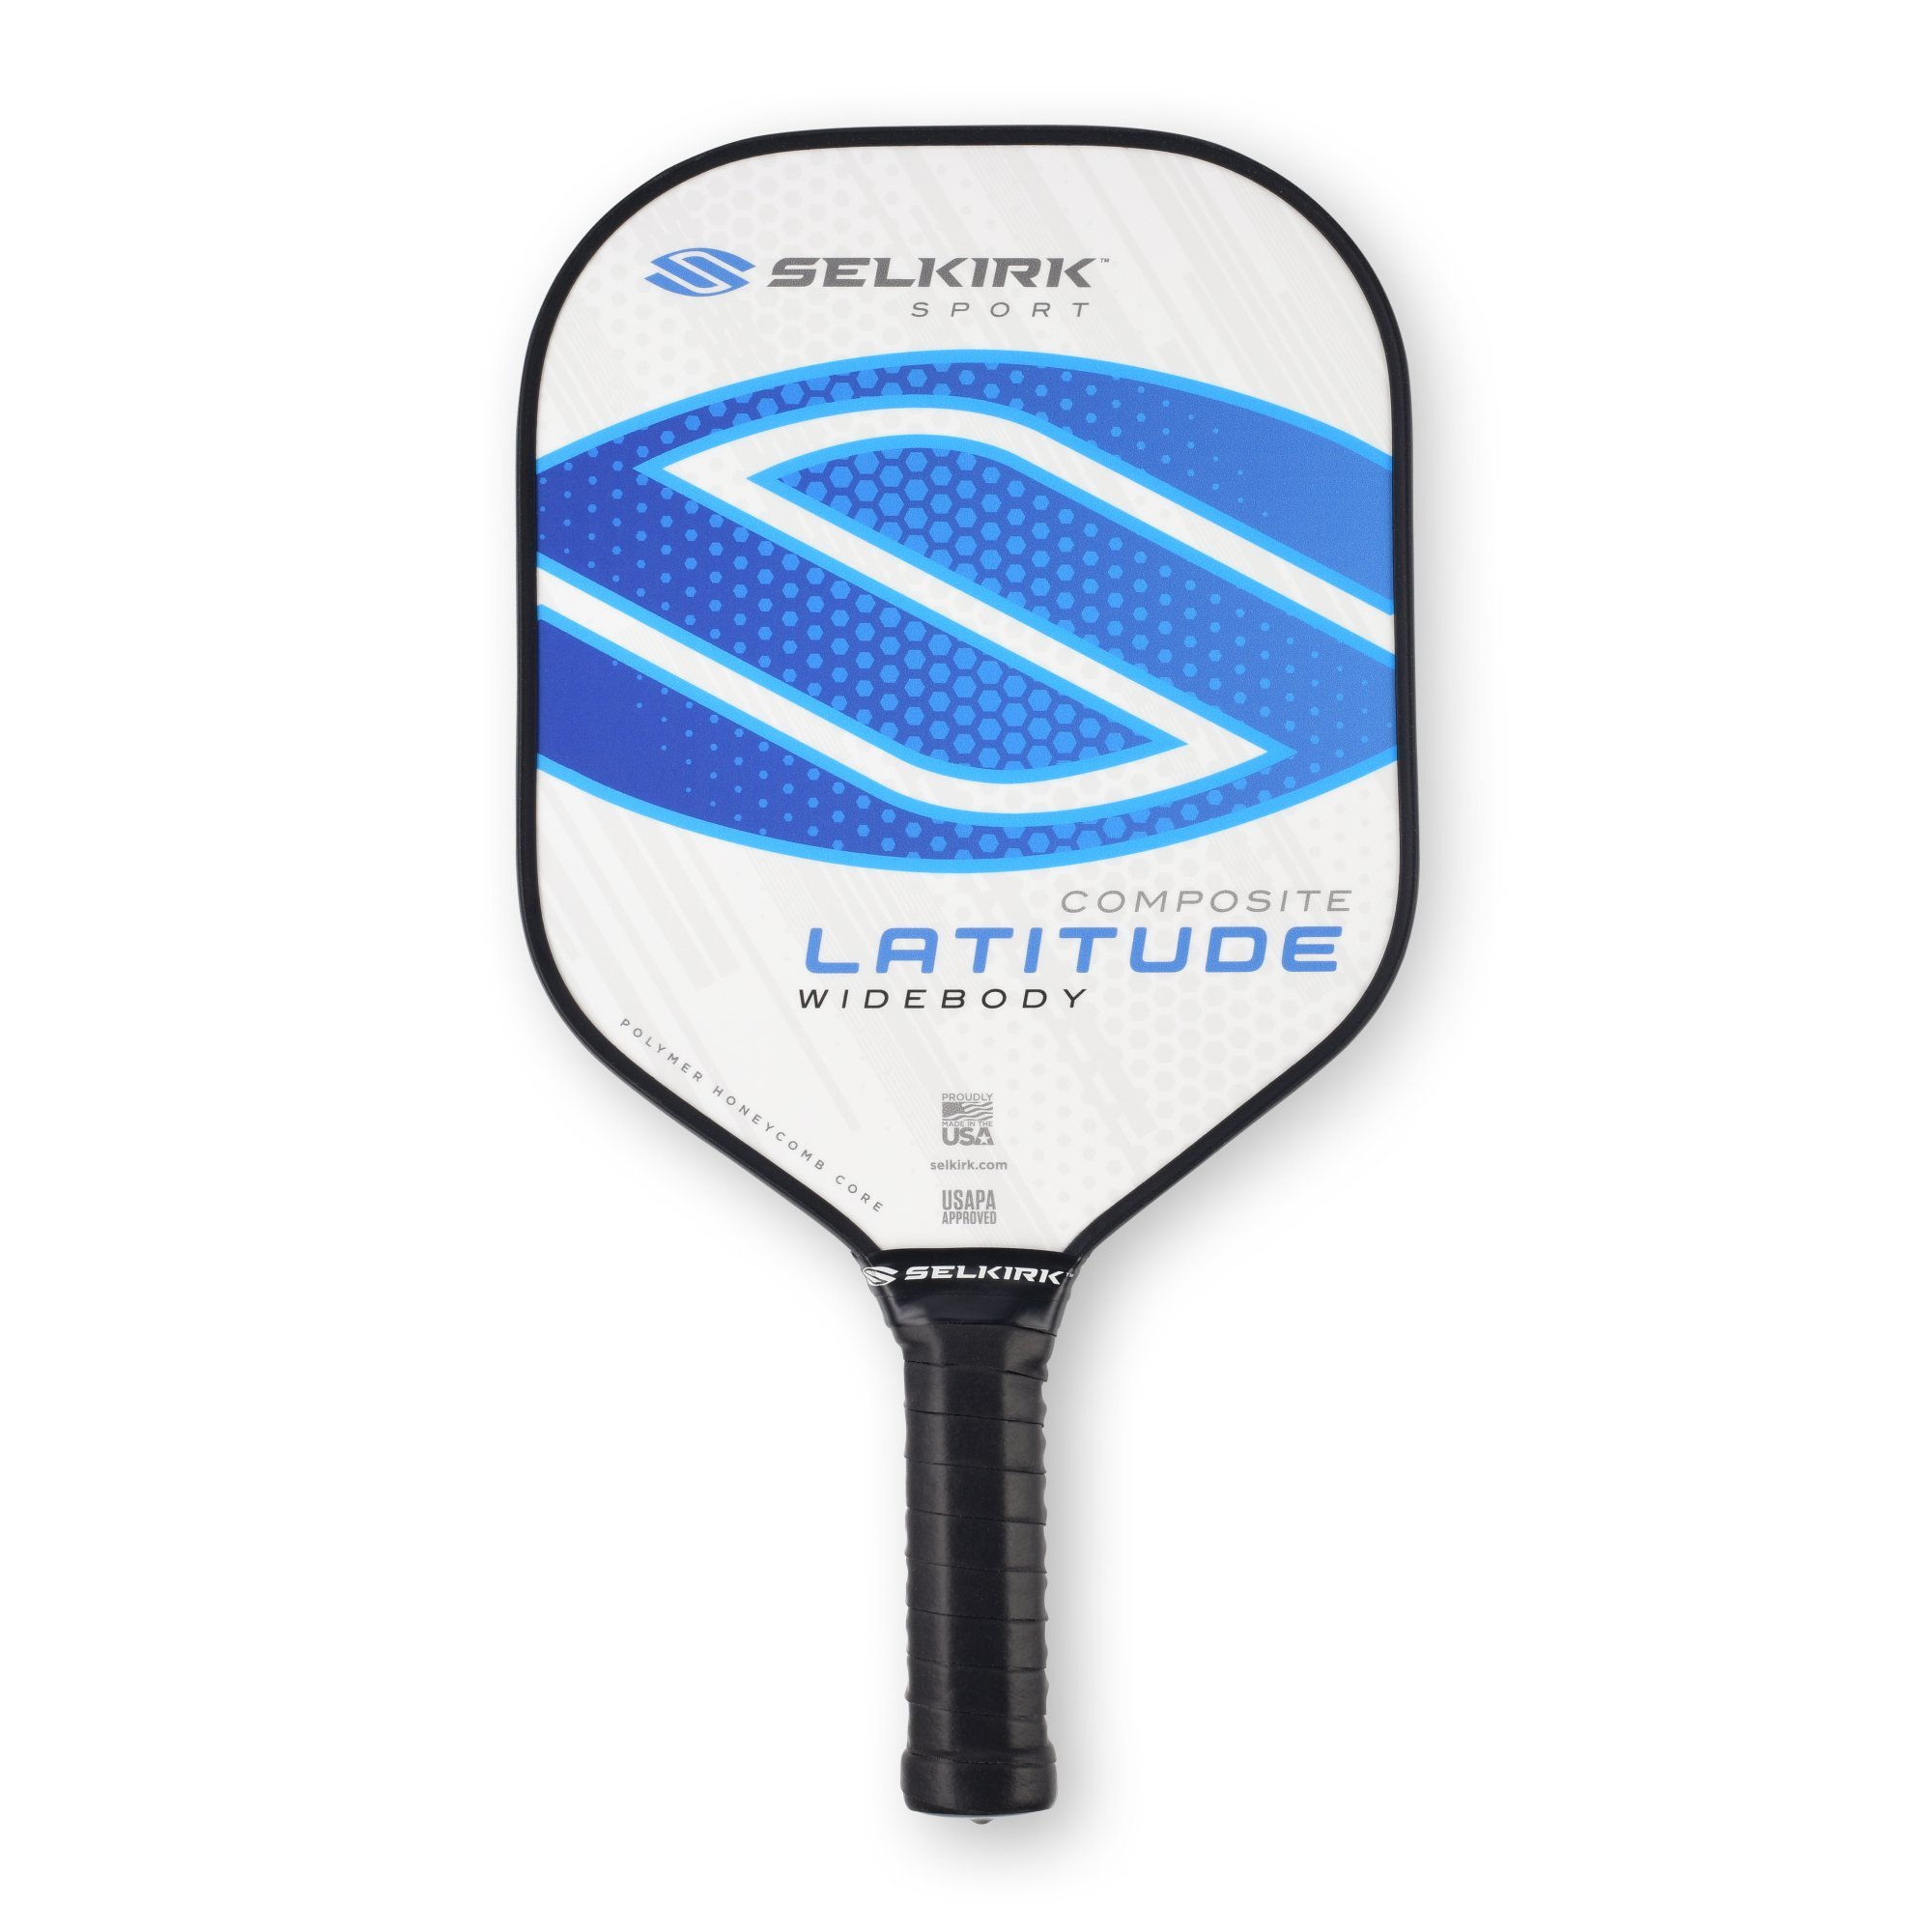 Selkirk Latitude Widebody Composite Pickleball Paddle - USAPA Approved - PowerCore Polymer Core - PolyFlex Composite Surface - EdgeSentry Protection - ThinGrip Handle (Blue Force) by Selkirk Sport